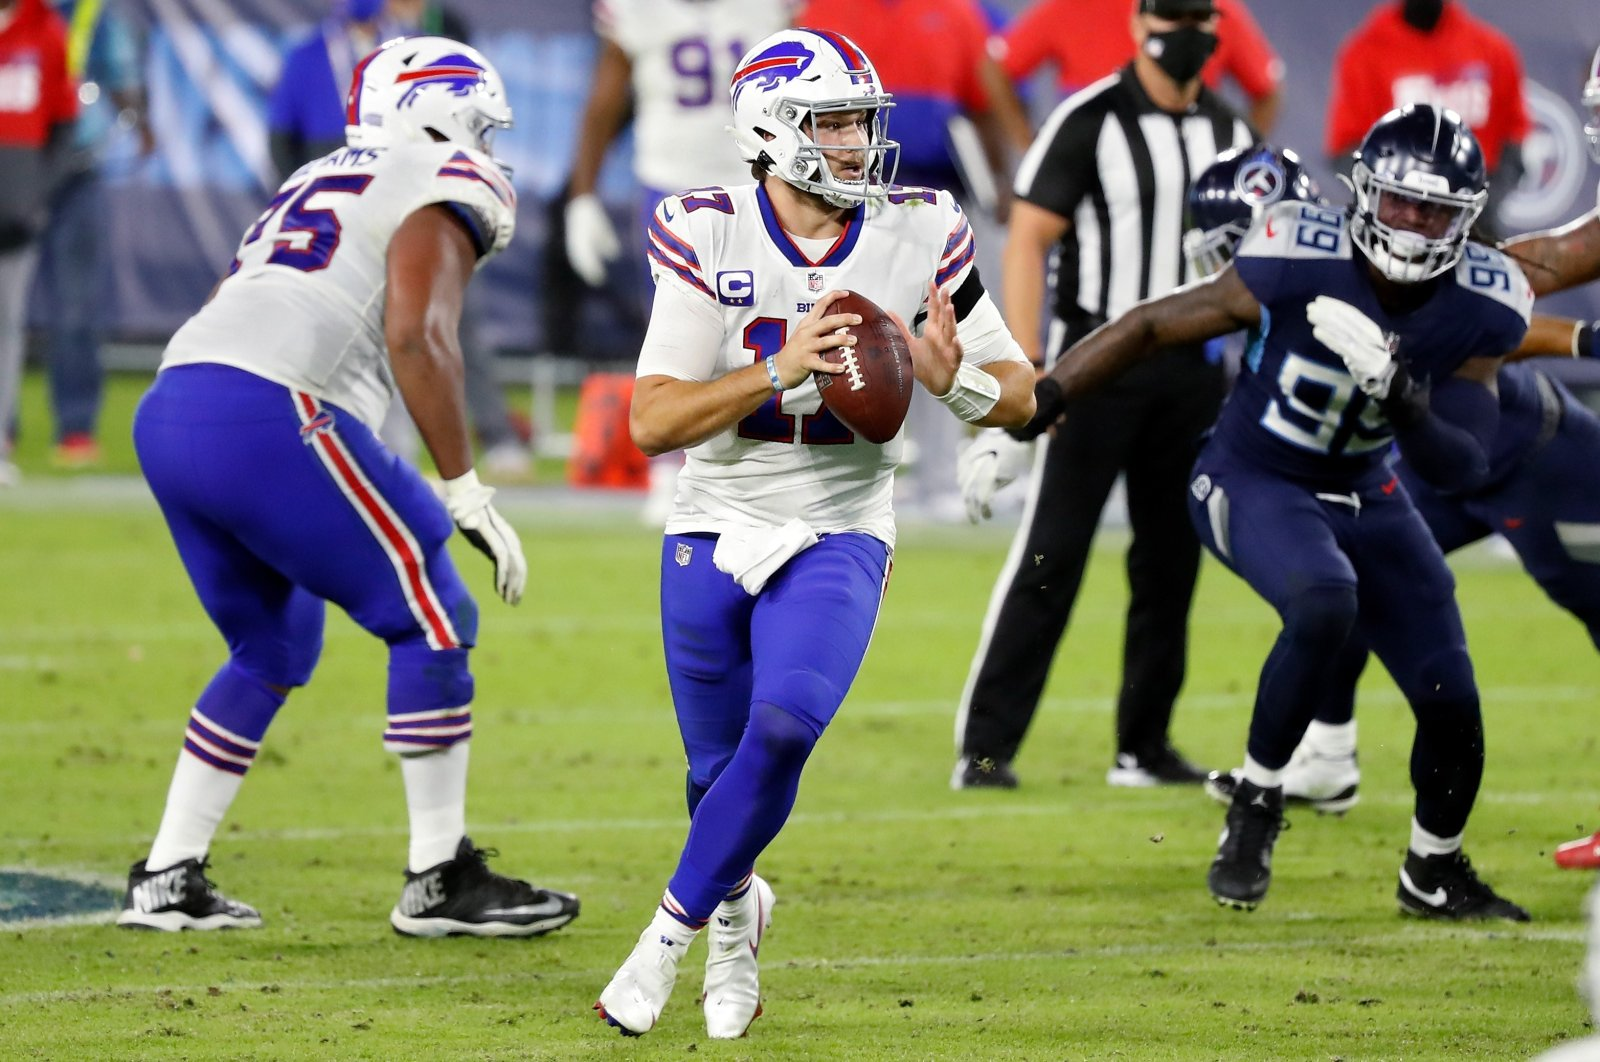 Josh Allen of the Buffalo Bills drops back to pass, in Nashville, Tennessee, Oct. 13, 2020. (AFP Photo)